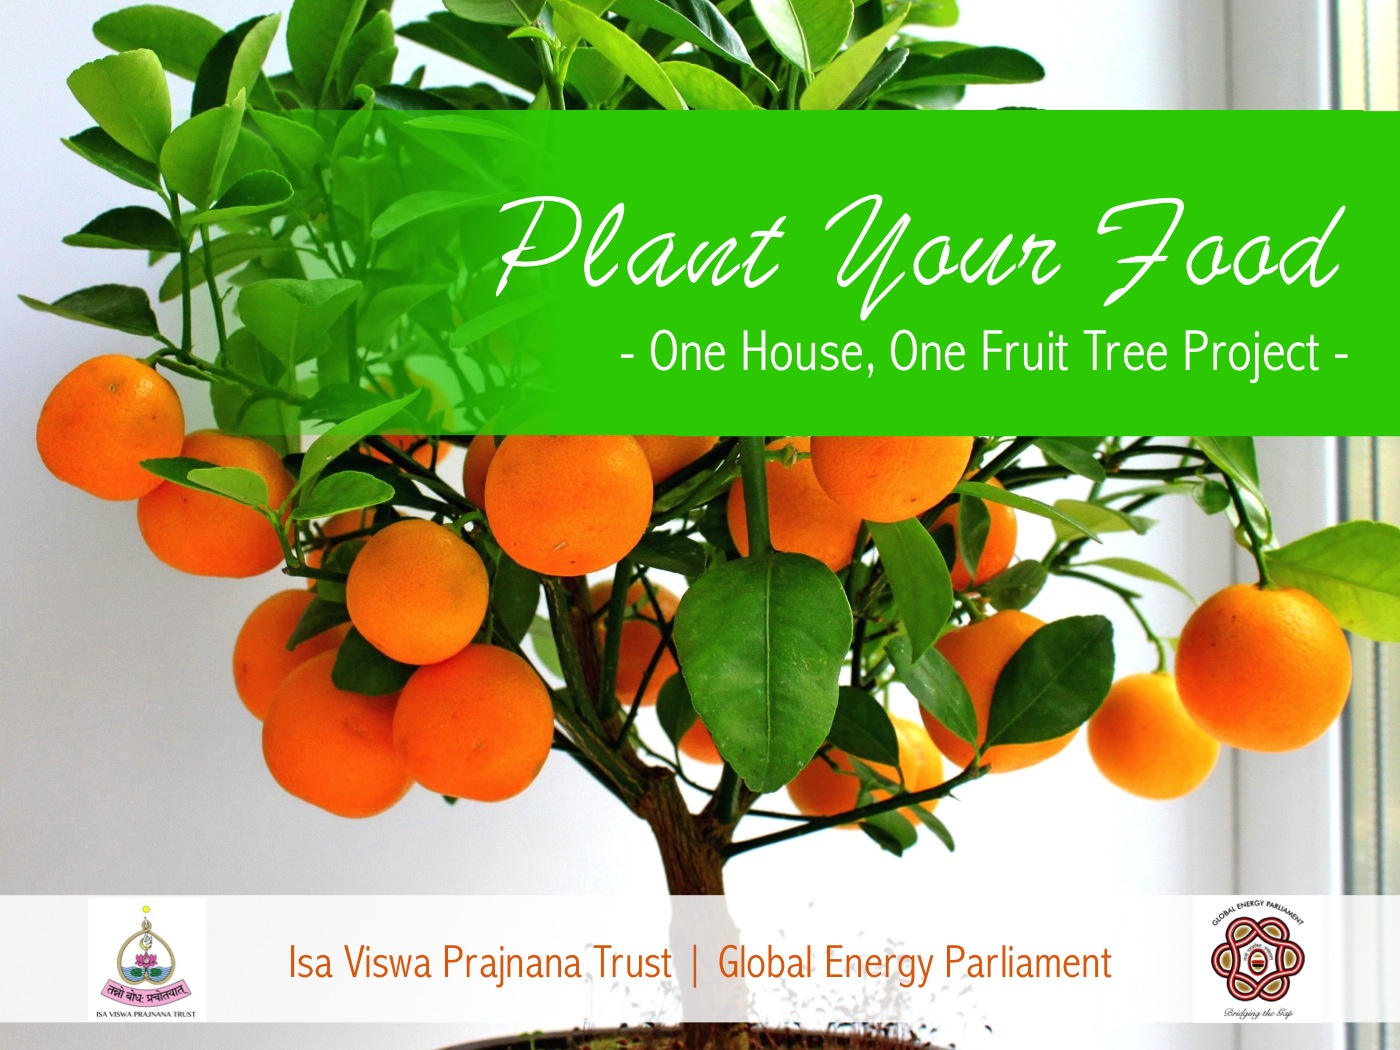 One House One Fruit Tree